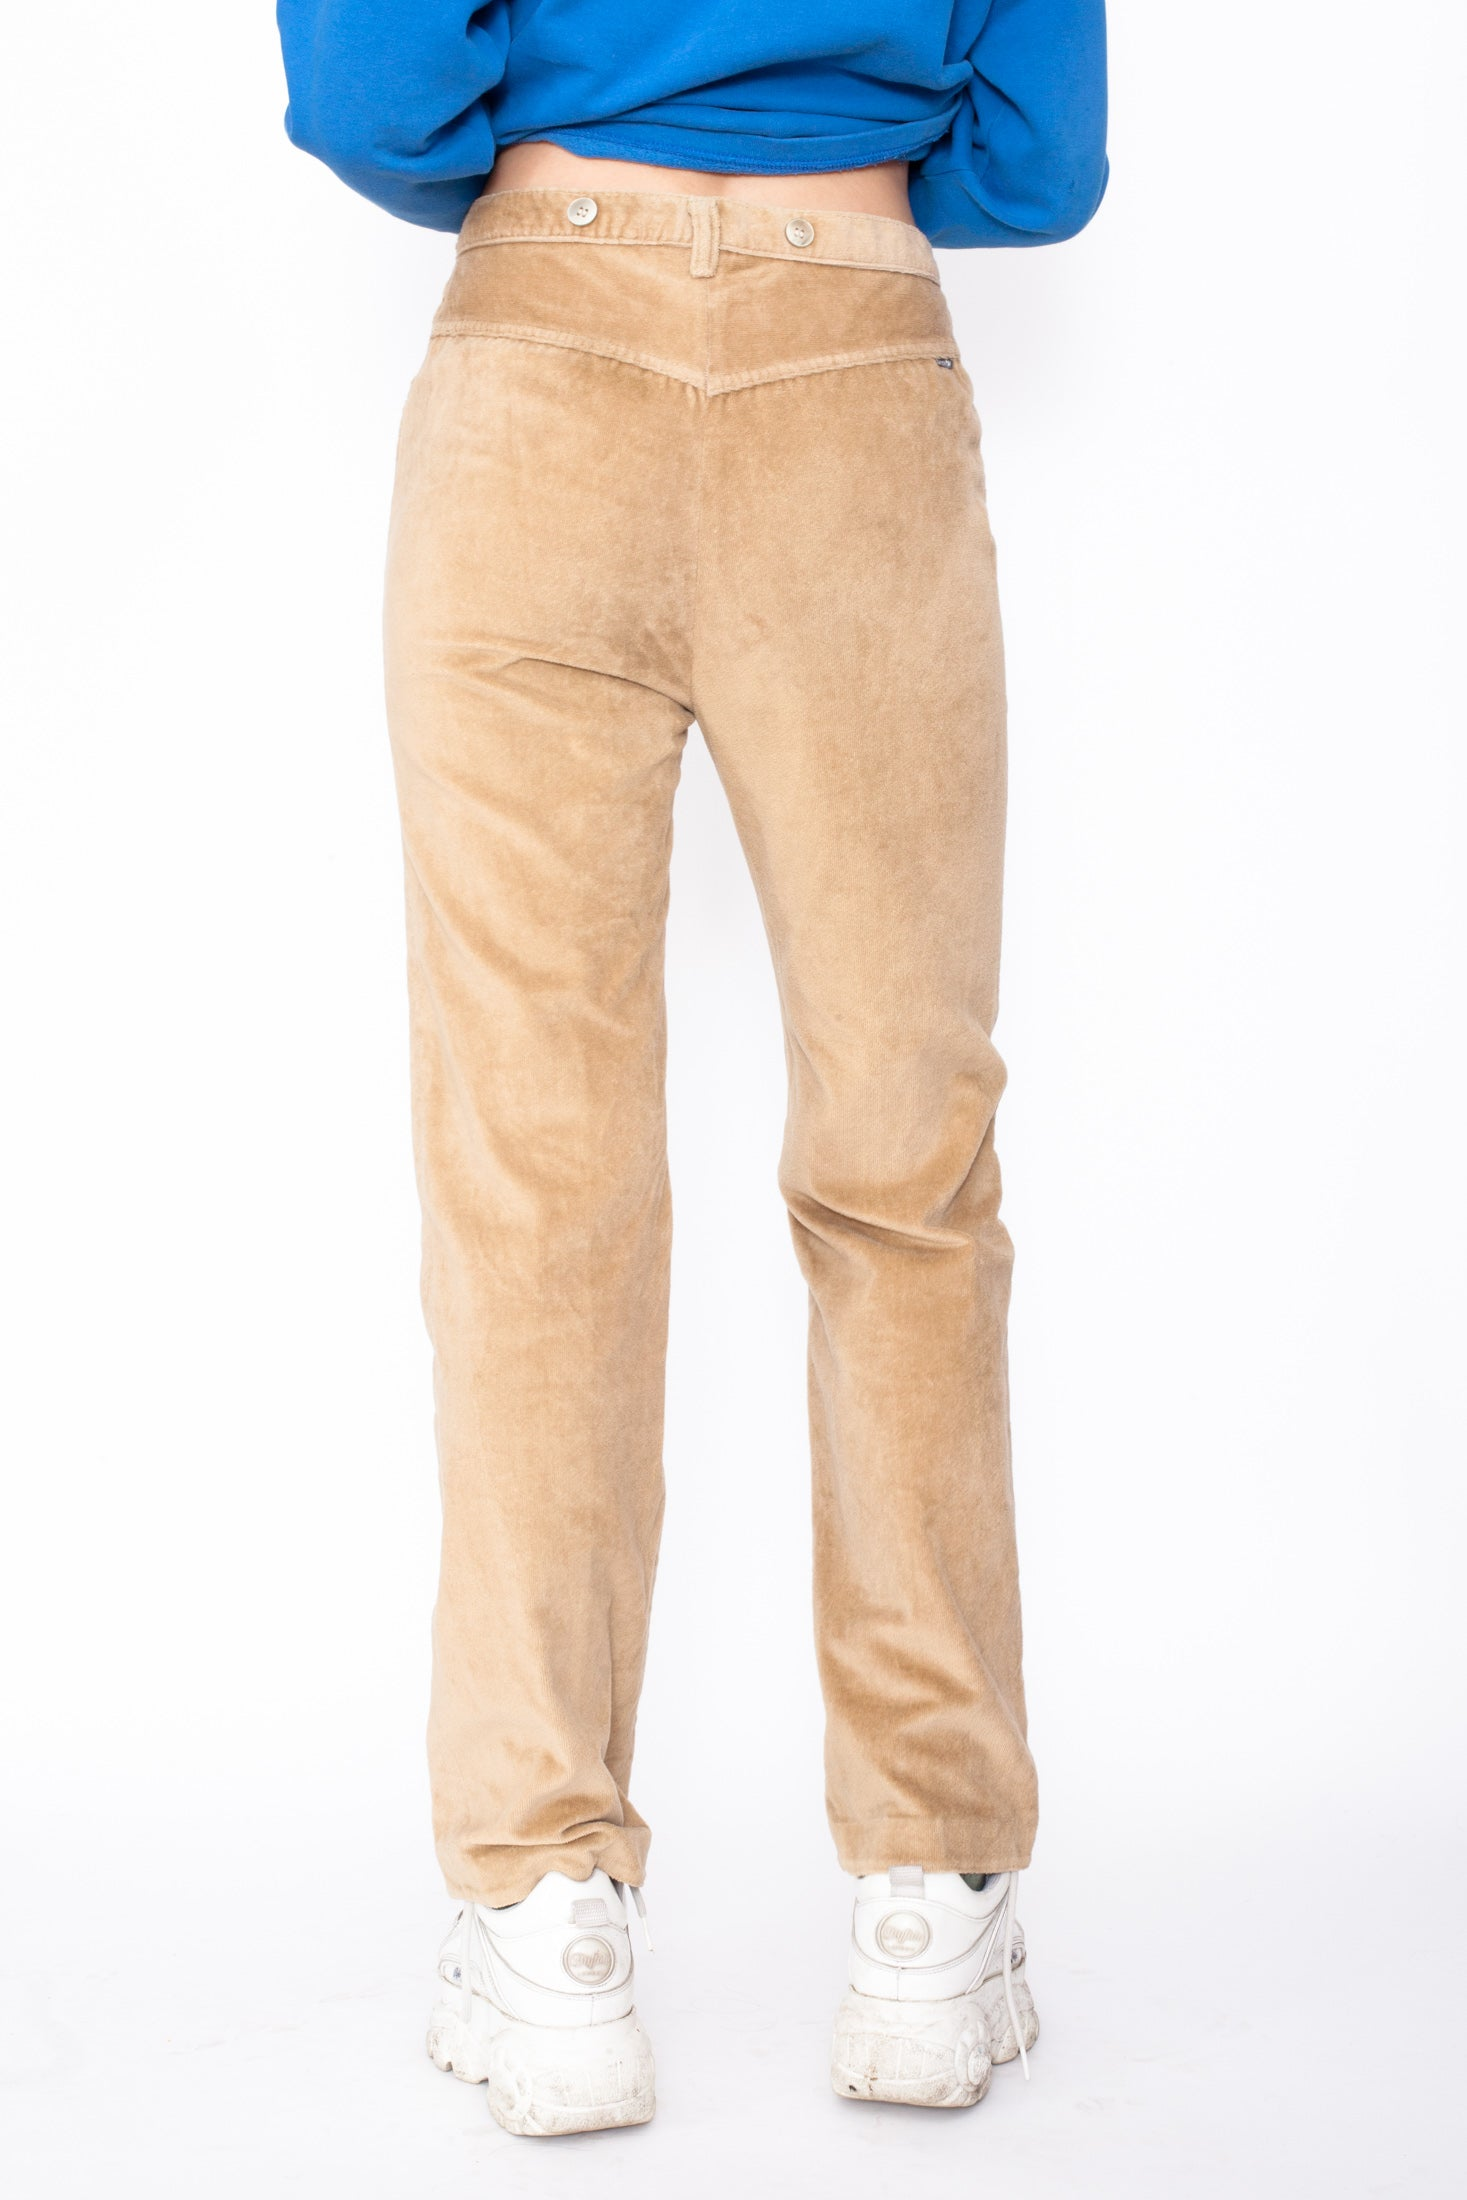 Vintage beige high waisted trousers real pockets front and one at the back